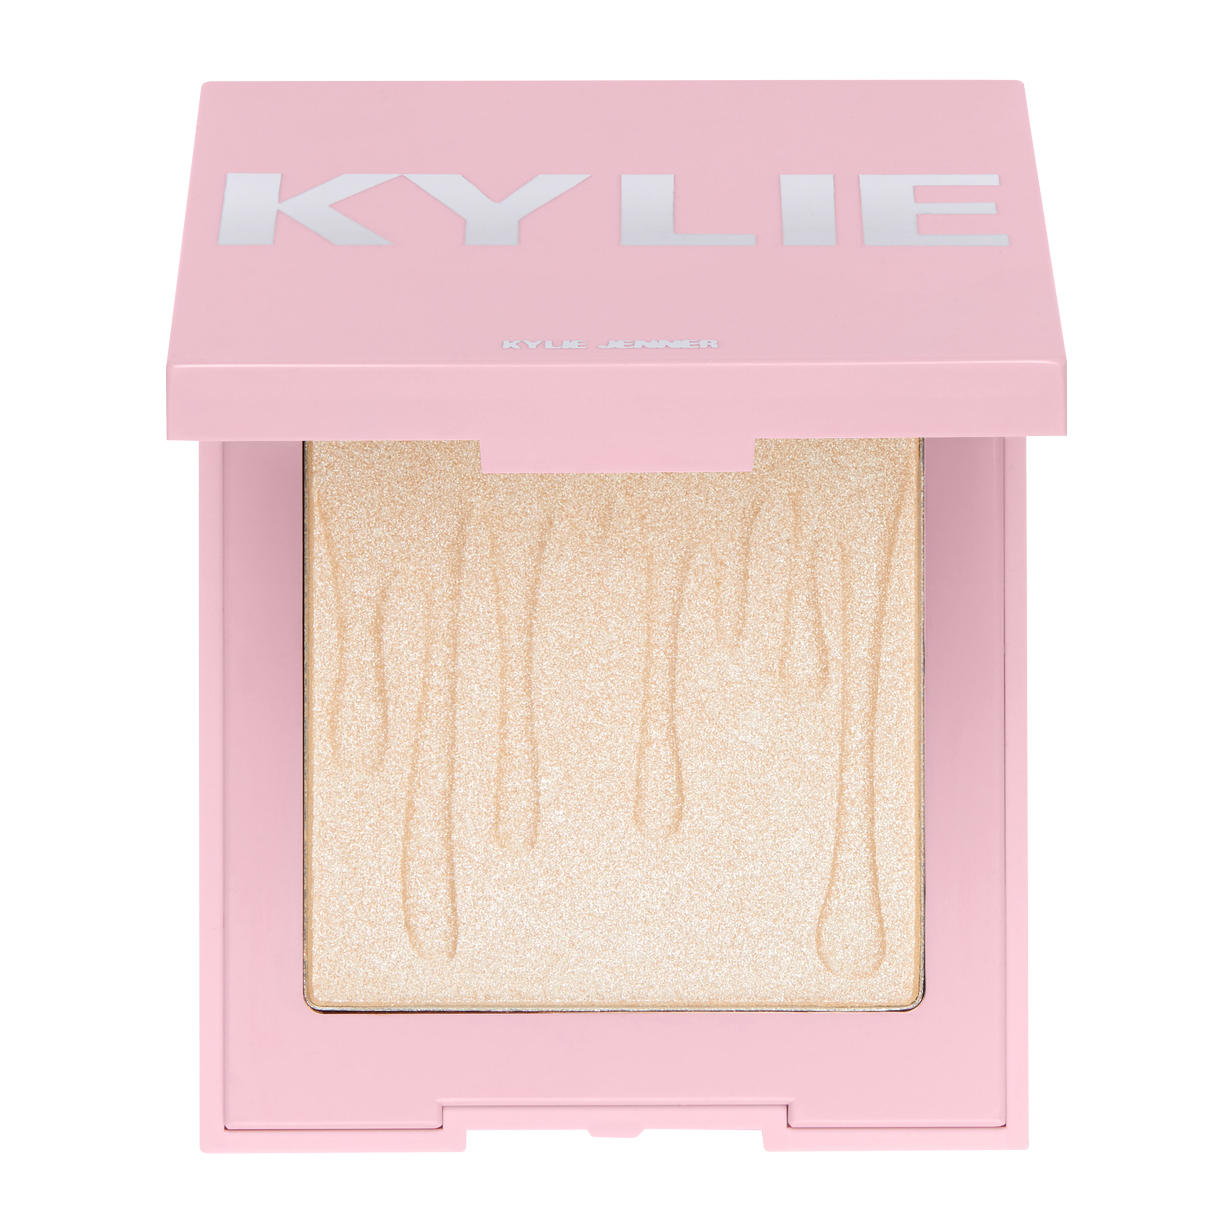 Kylie Kylighter Pressed Illuminating Powder Ice Me Out